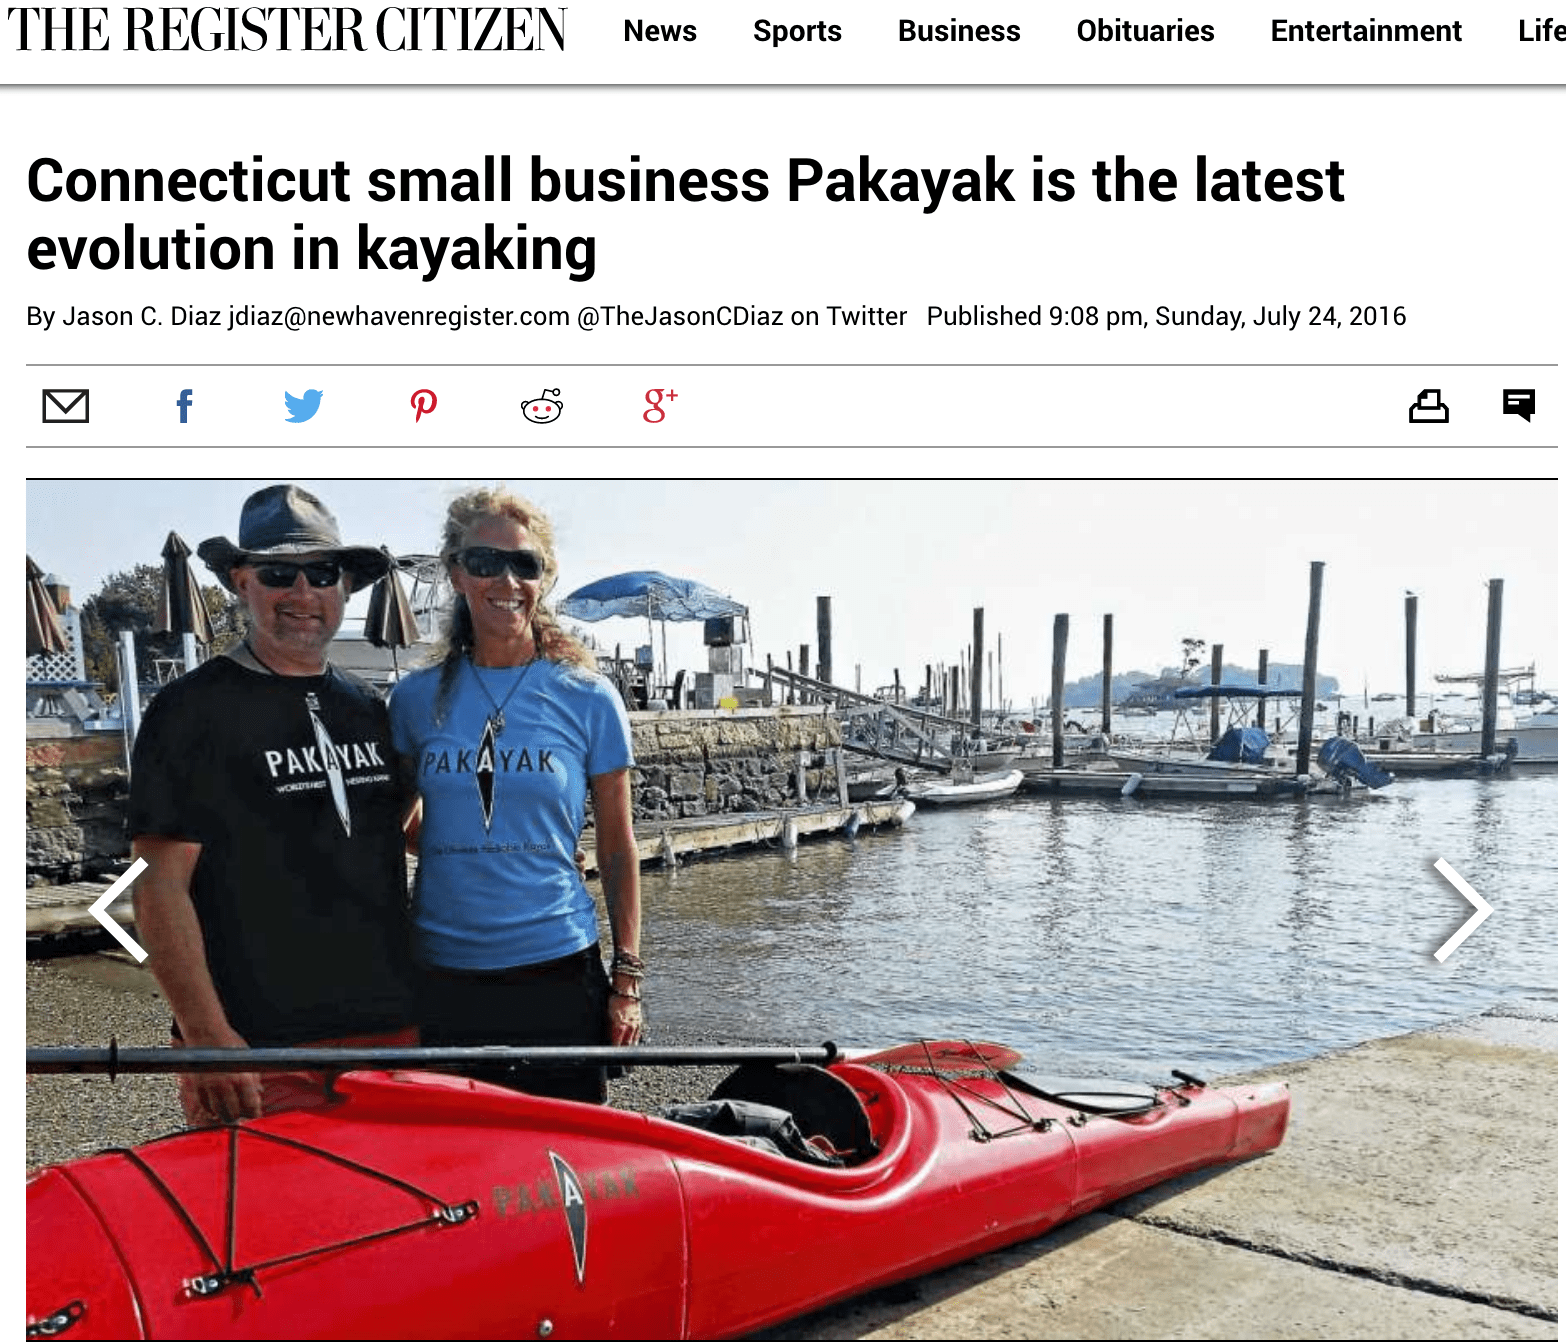 Register Citizen: Connecticut small business Pakayak is the latest evolution in kayaking